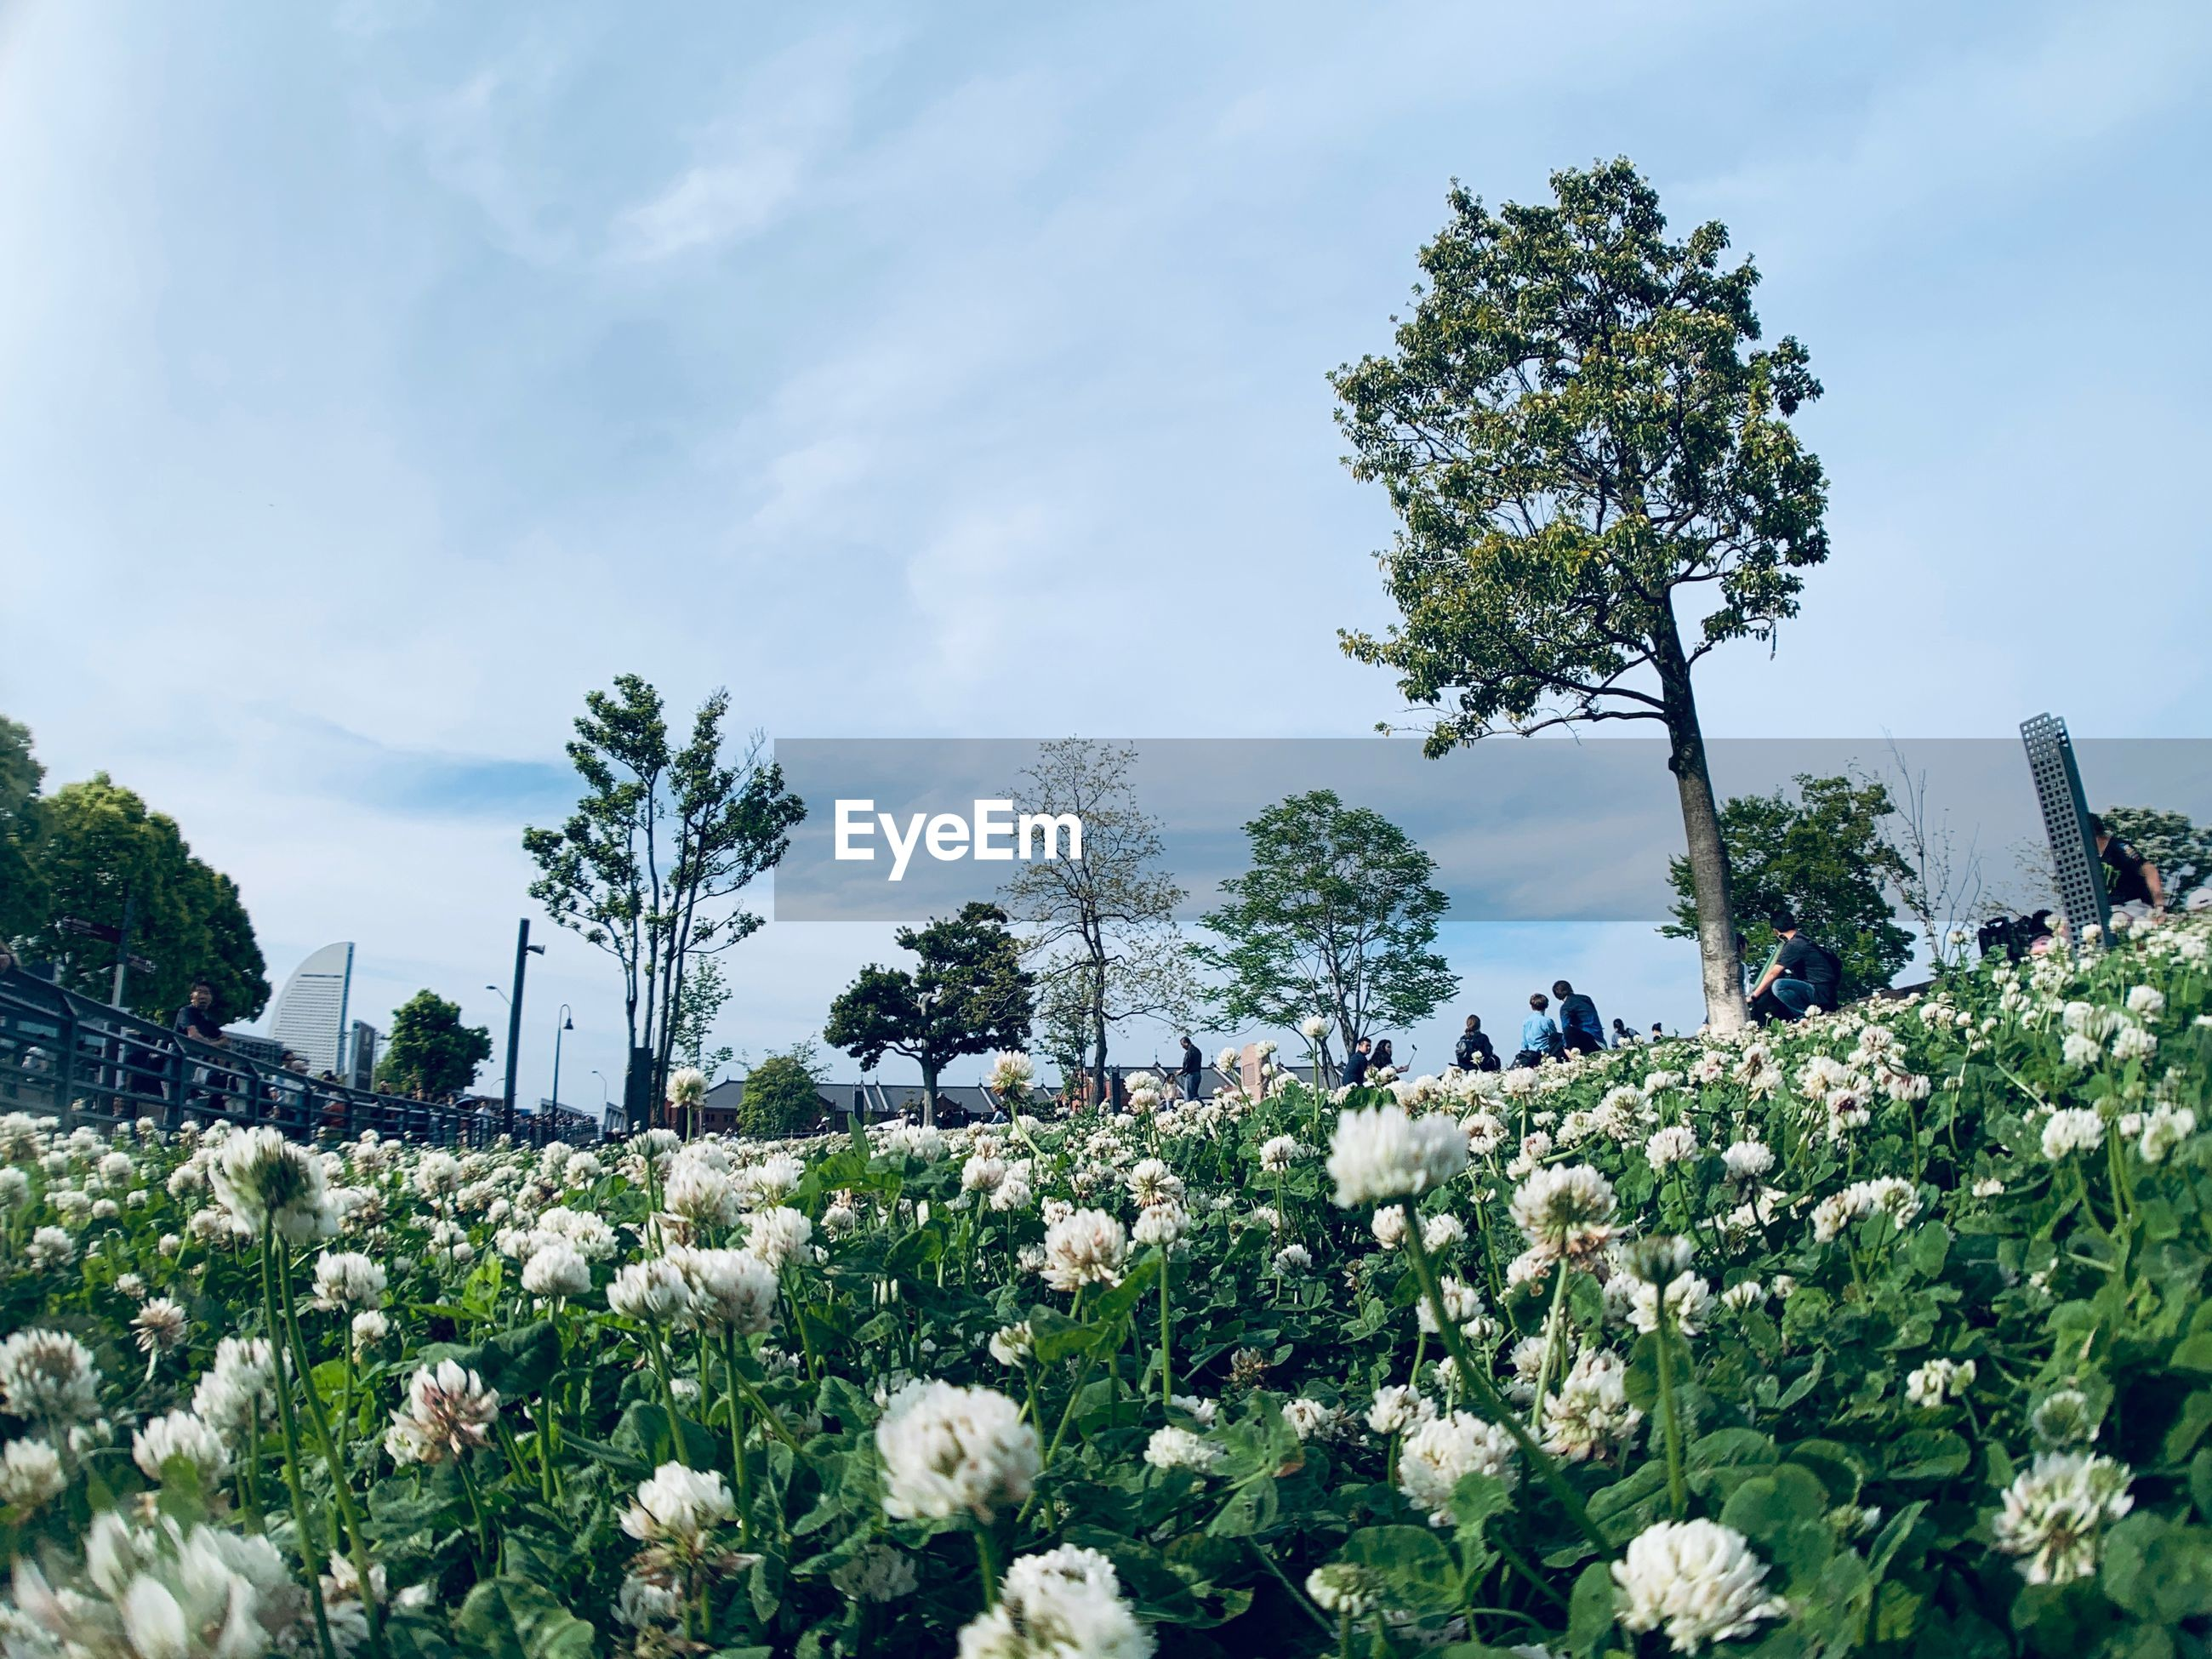 SCENIC VIEW OF FLOWERING PLANTS AND TREES AGAINST SKY